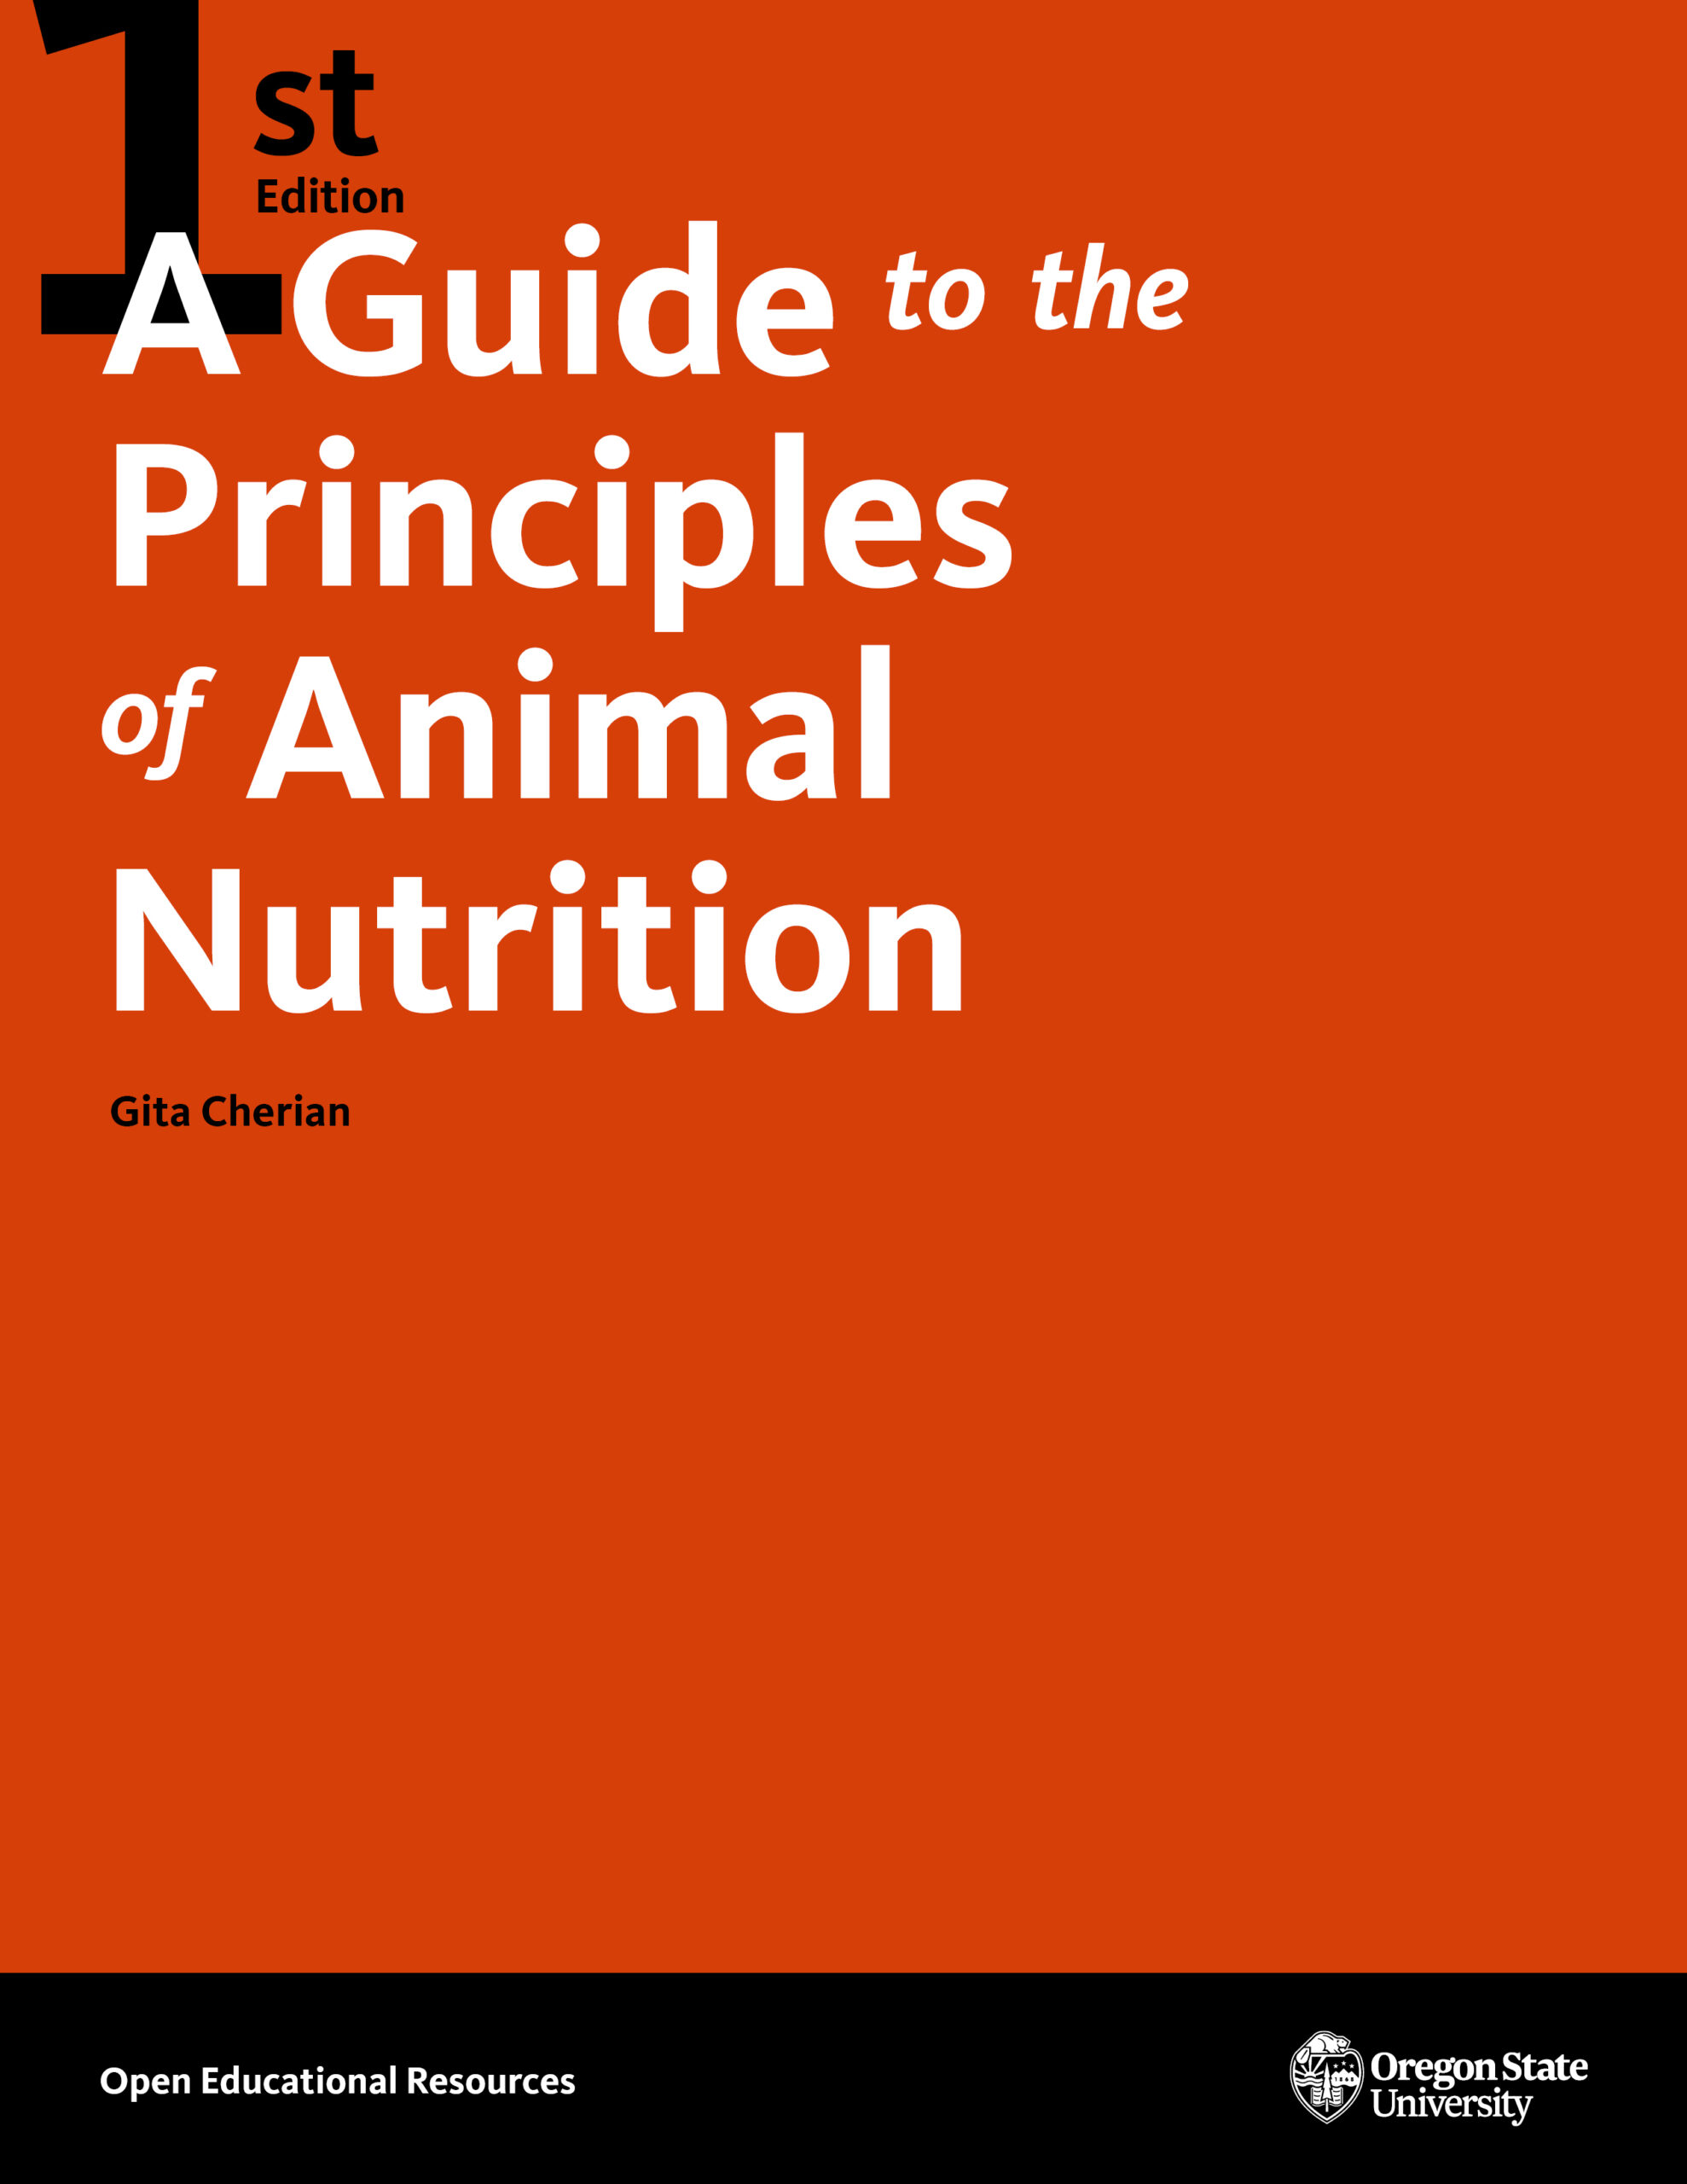 A Guide to the Principles of Animal Nutrition